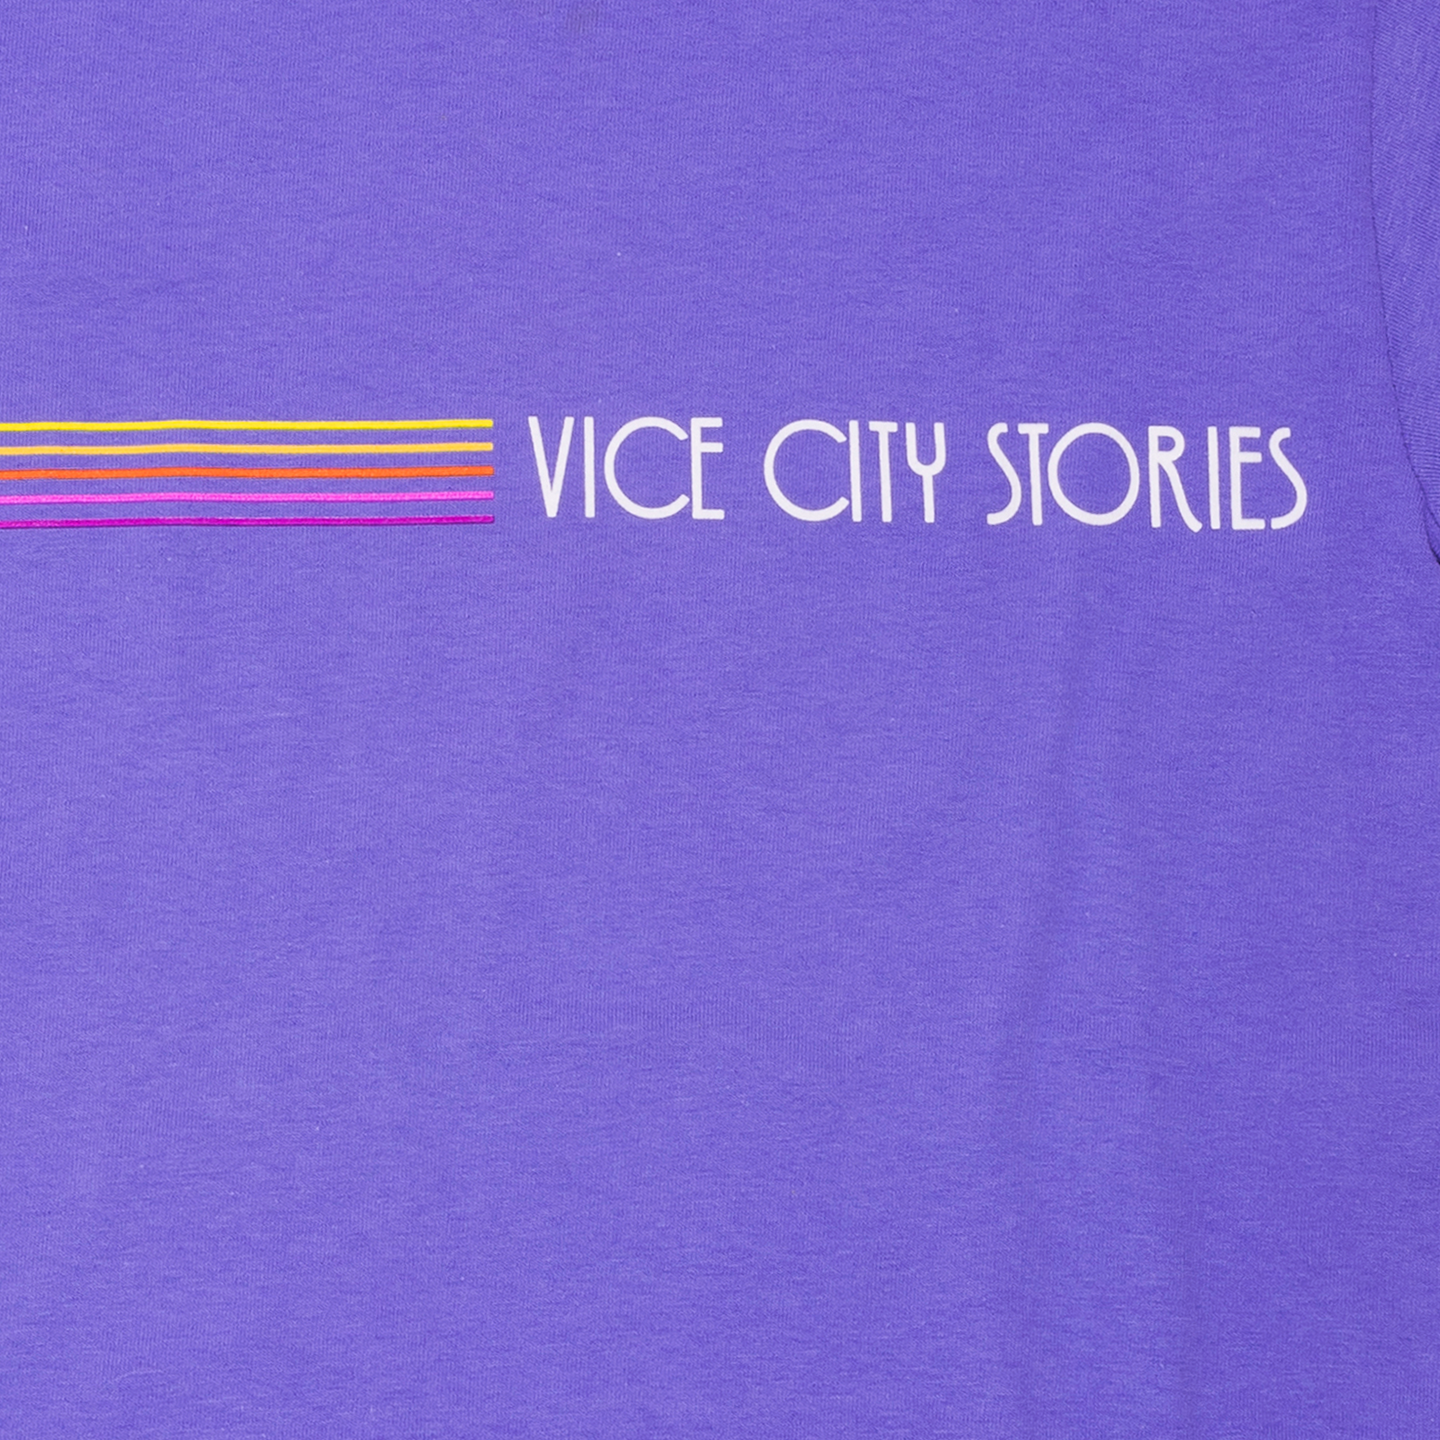 Vice City Stories Flamingo Tee